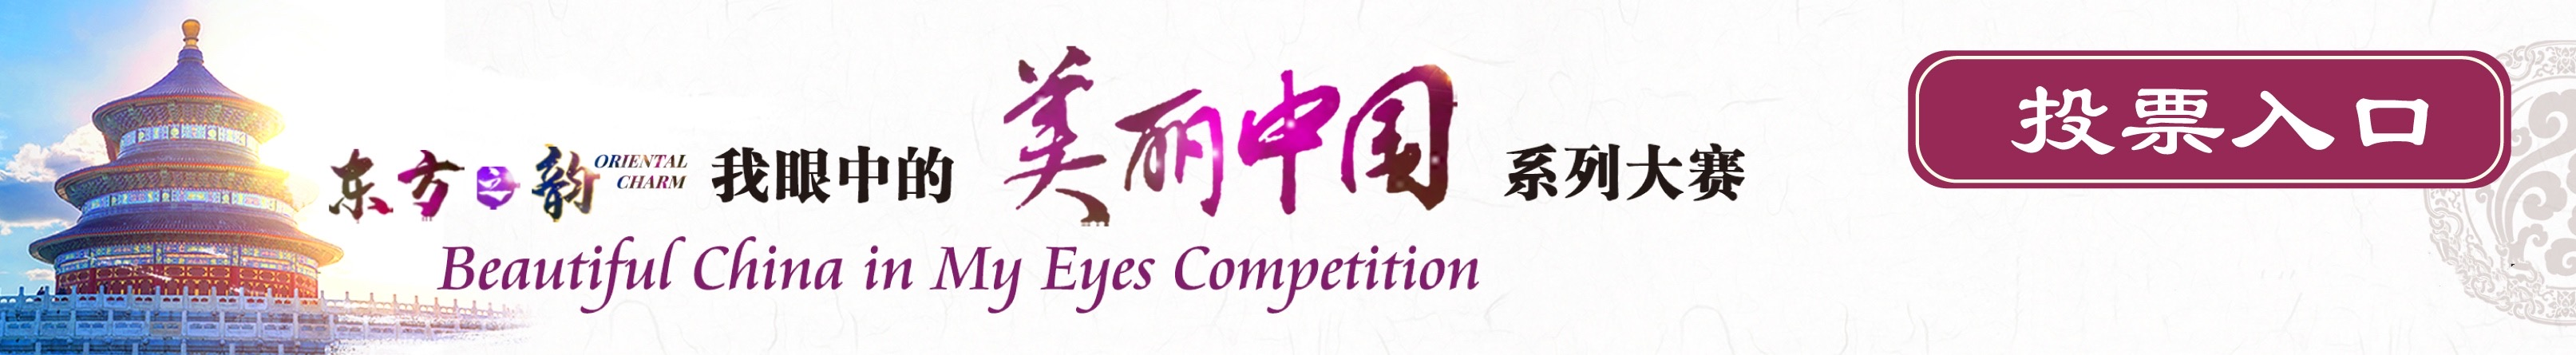 "Australia-""Rhyme of the East"" My eyes on the beautiful China series contest works voted online! – Australia Chinatown-Australian News Portal"